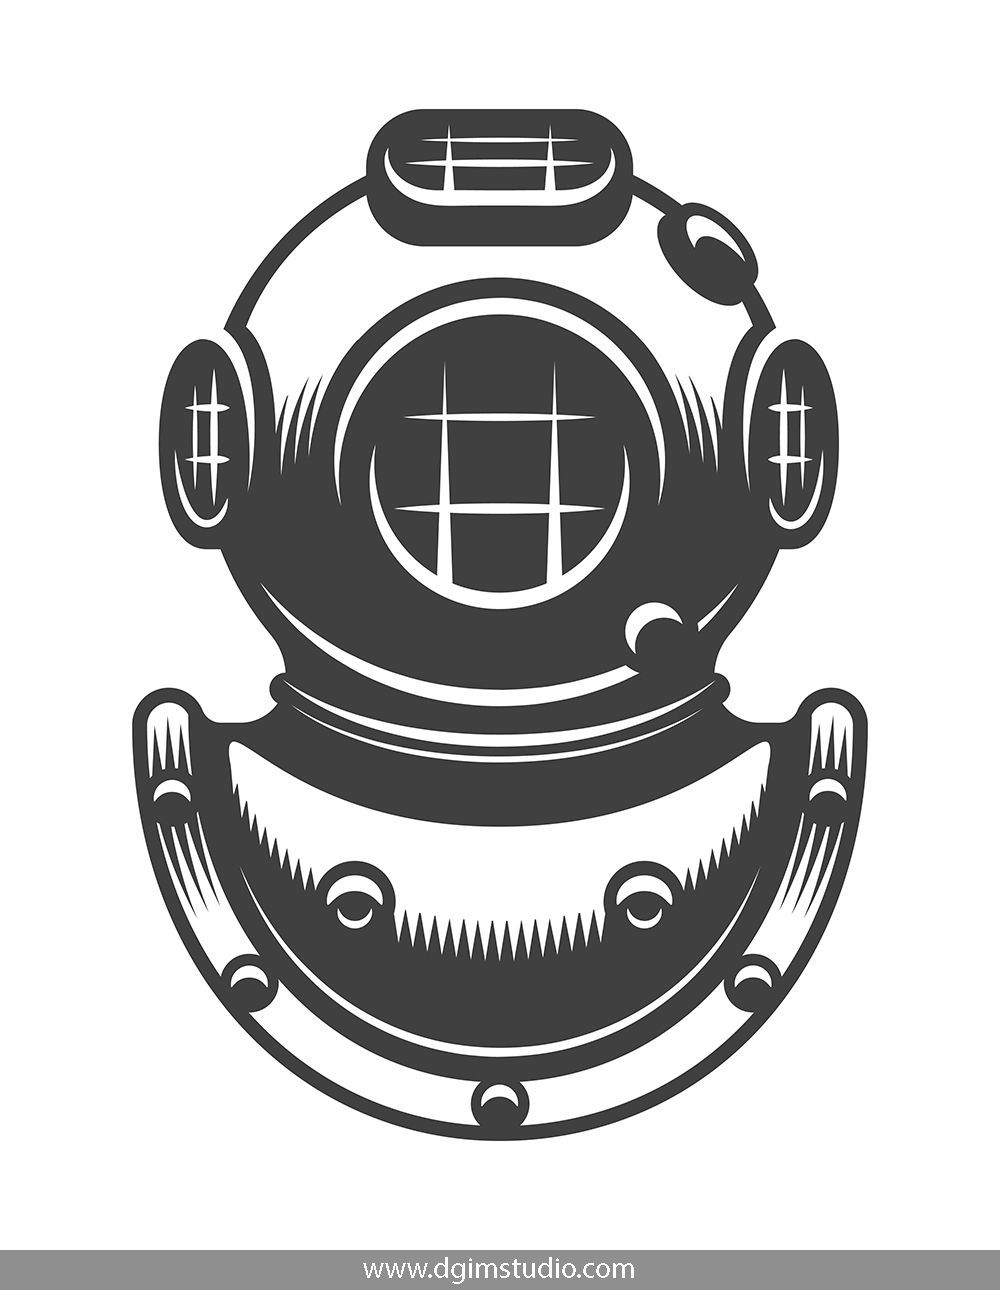 Monochrome Diving Helmet In Vintage Style Click To The Link To Find More Diving Elements Badges Emblems An Diving Helmet Vintage Nautical Tattoo Diving Logo